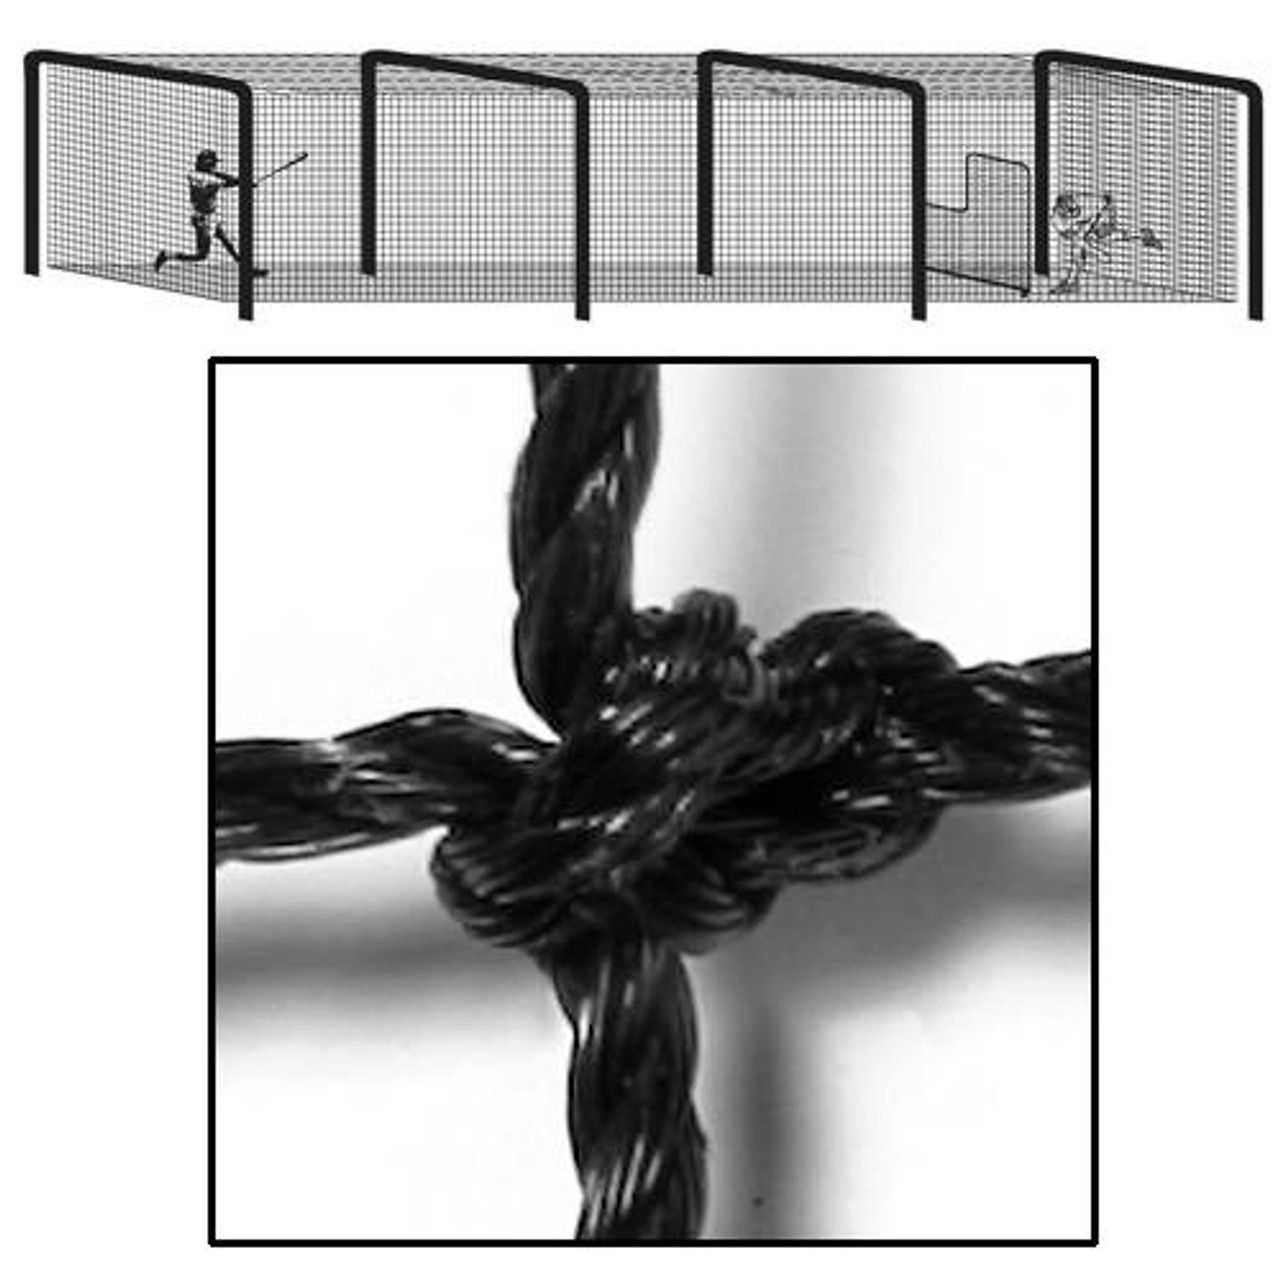 Baseball Collegiate Batting Tunnel Net 70x12x12